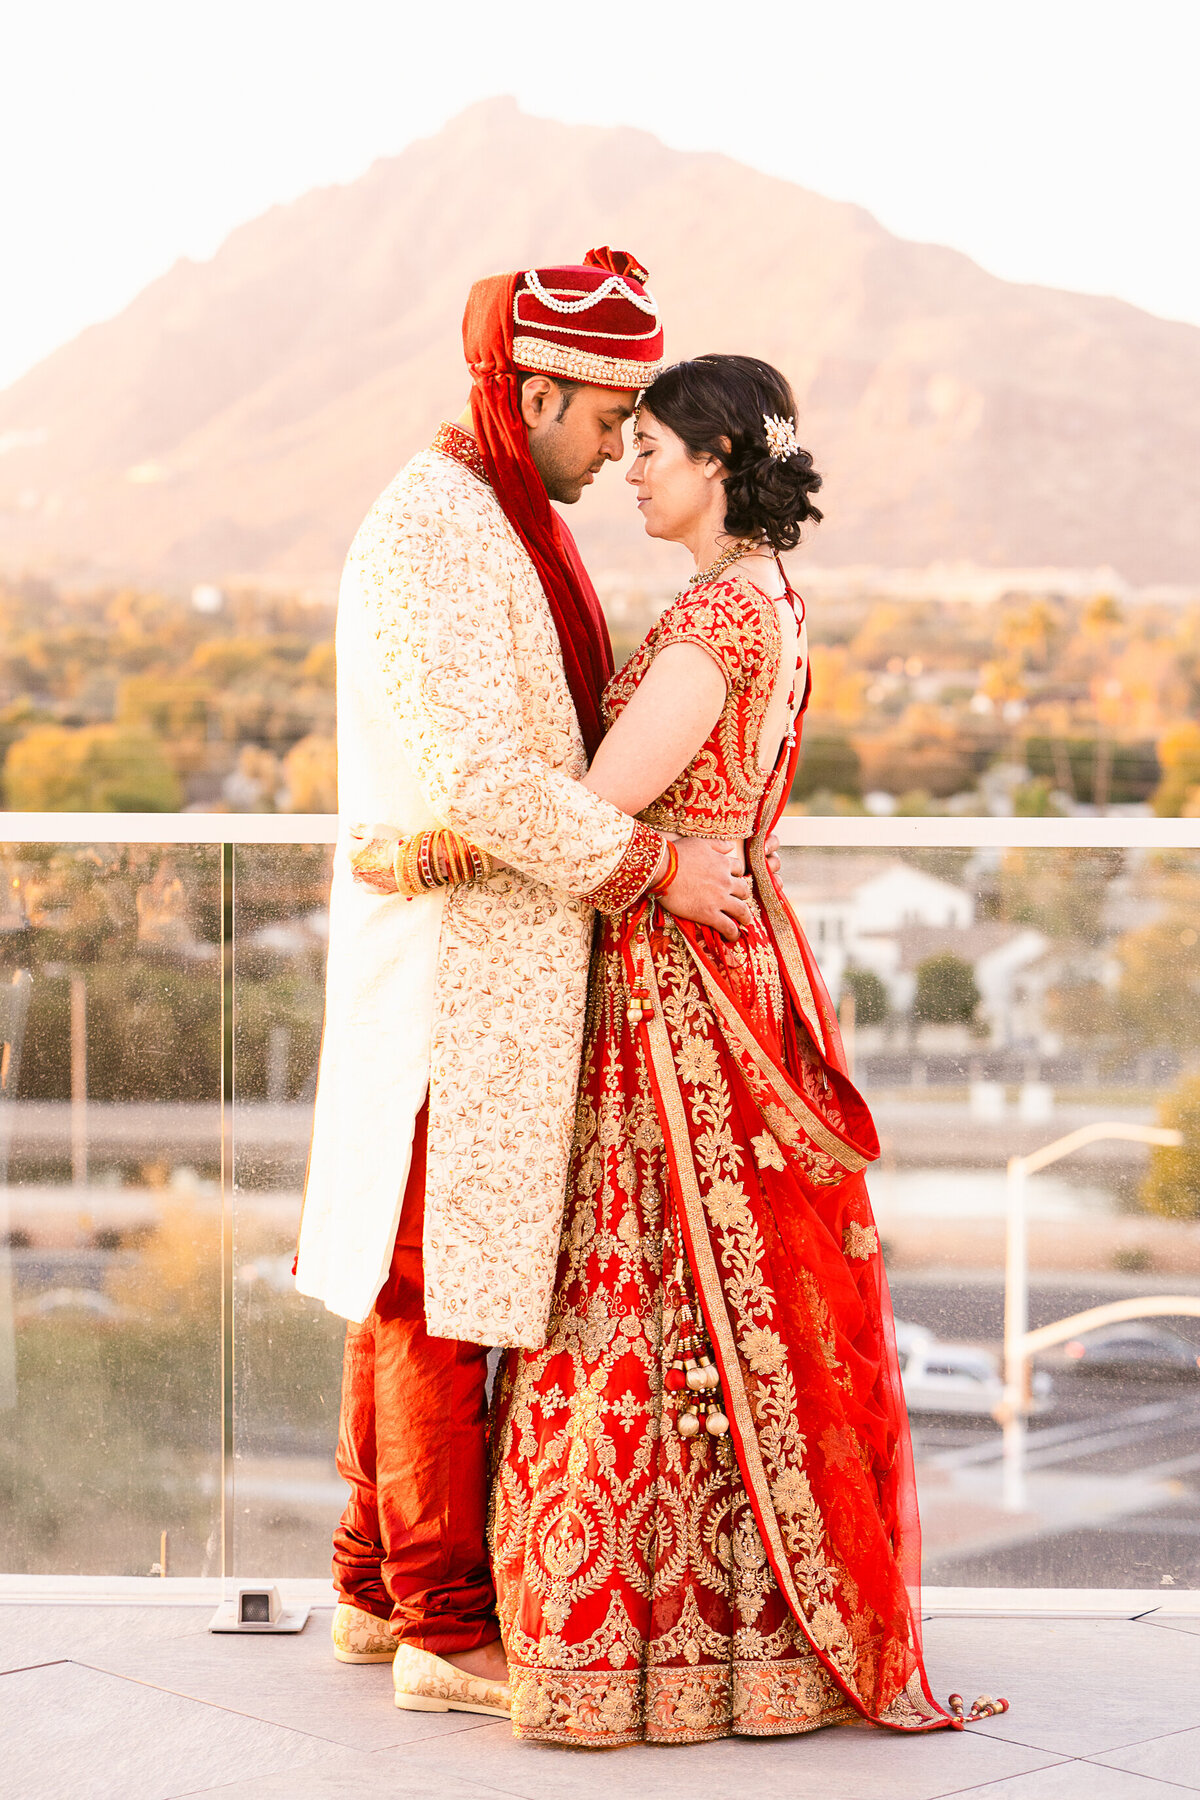 Hindu Wedding In Phoenix Arizona At Hotel Valley Ho - Phoenix Wedding Photographer - Atlas Rose Photography AZ04